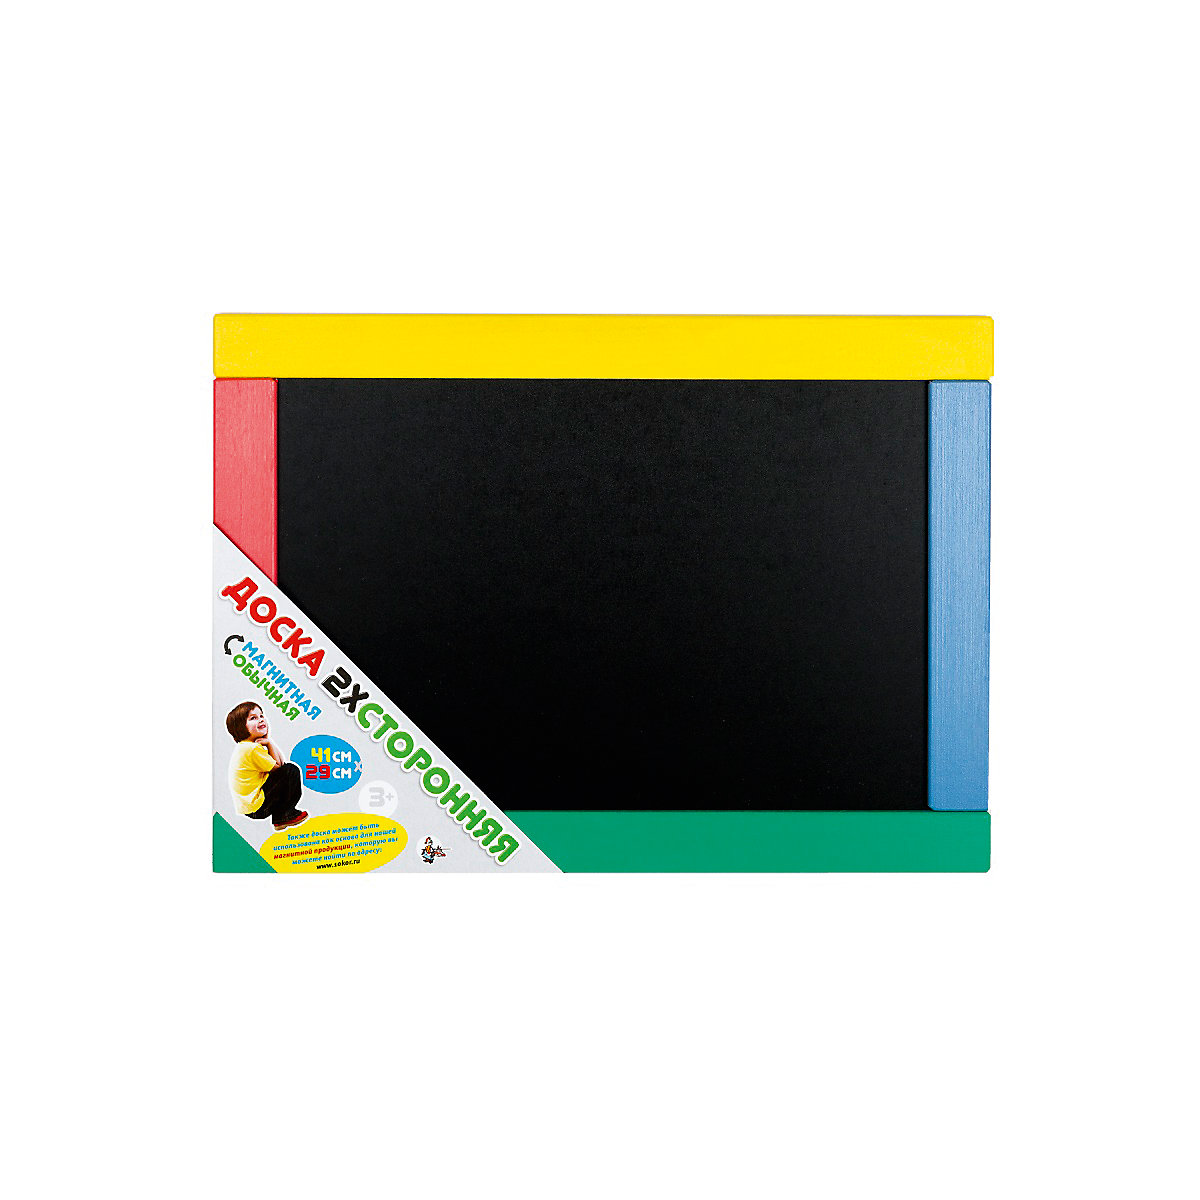 Blackboard Desyatoe korolevstvo 5471710 magnetic marker board  for records presentation boards drawing for girls and boys accessories for inverter driver board a5e00297621 0 teardown